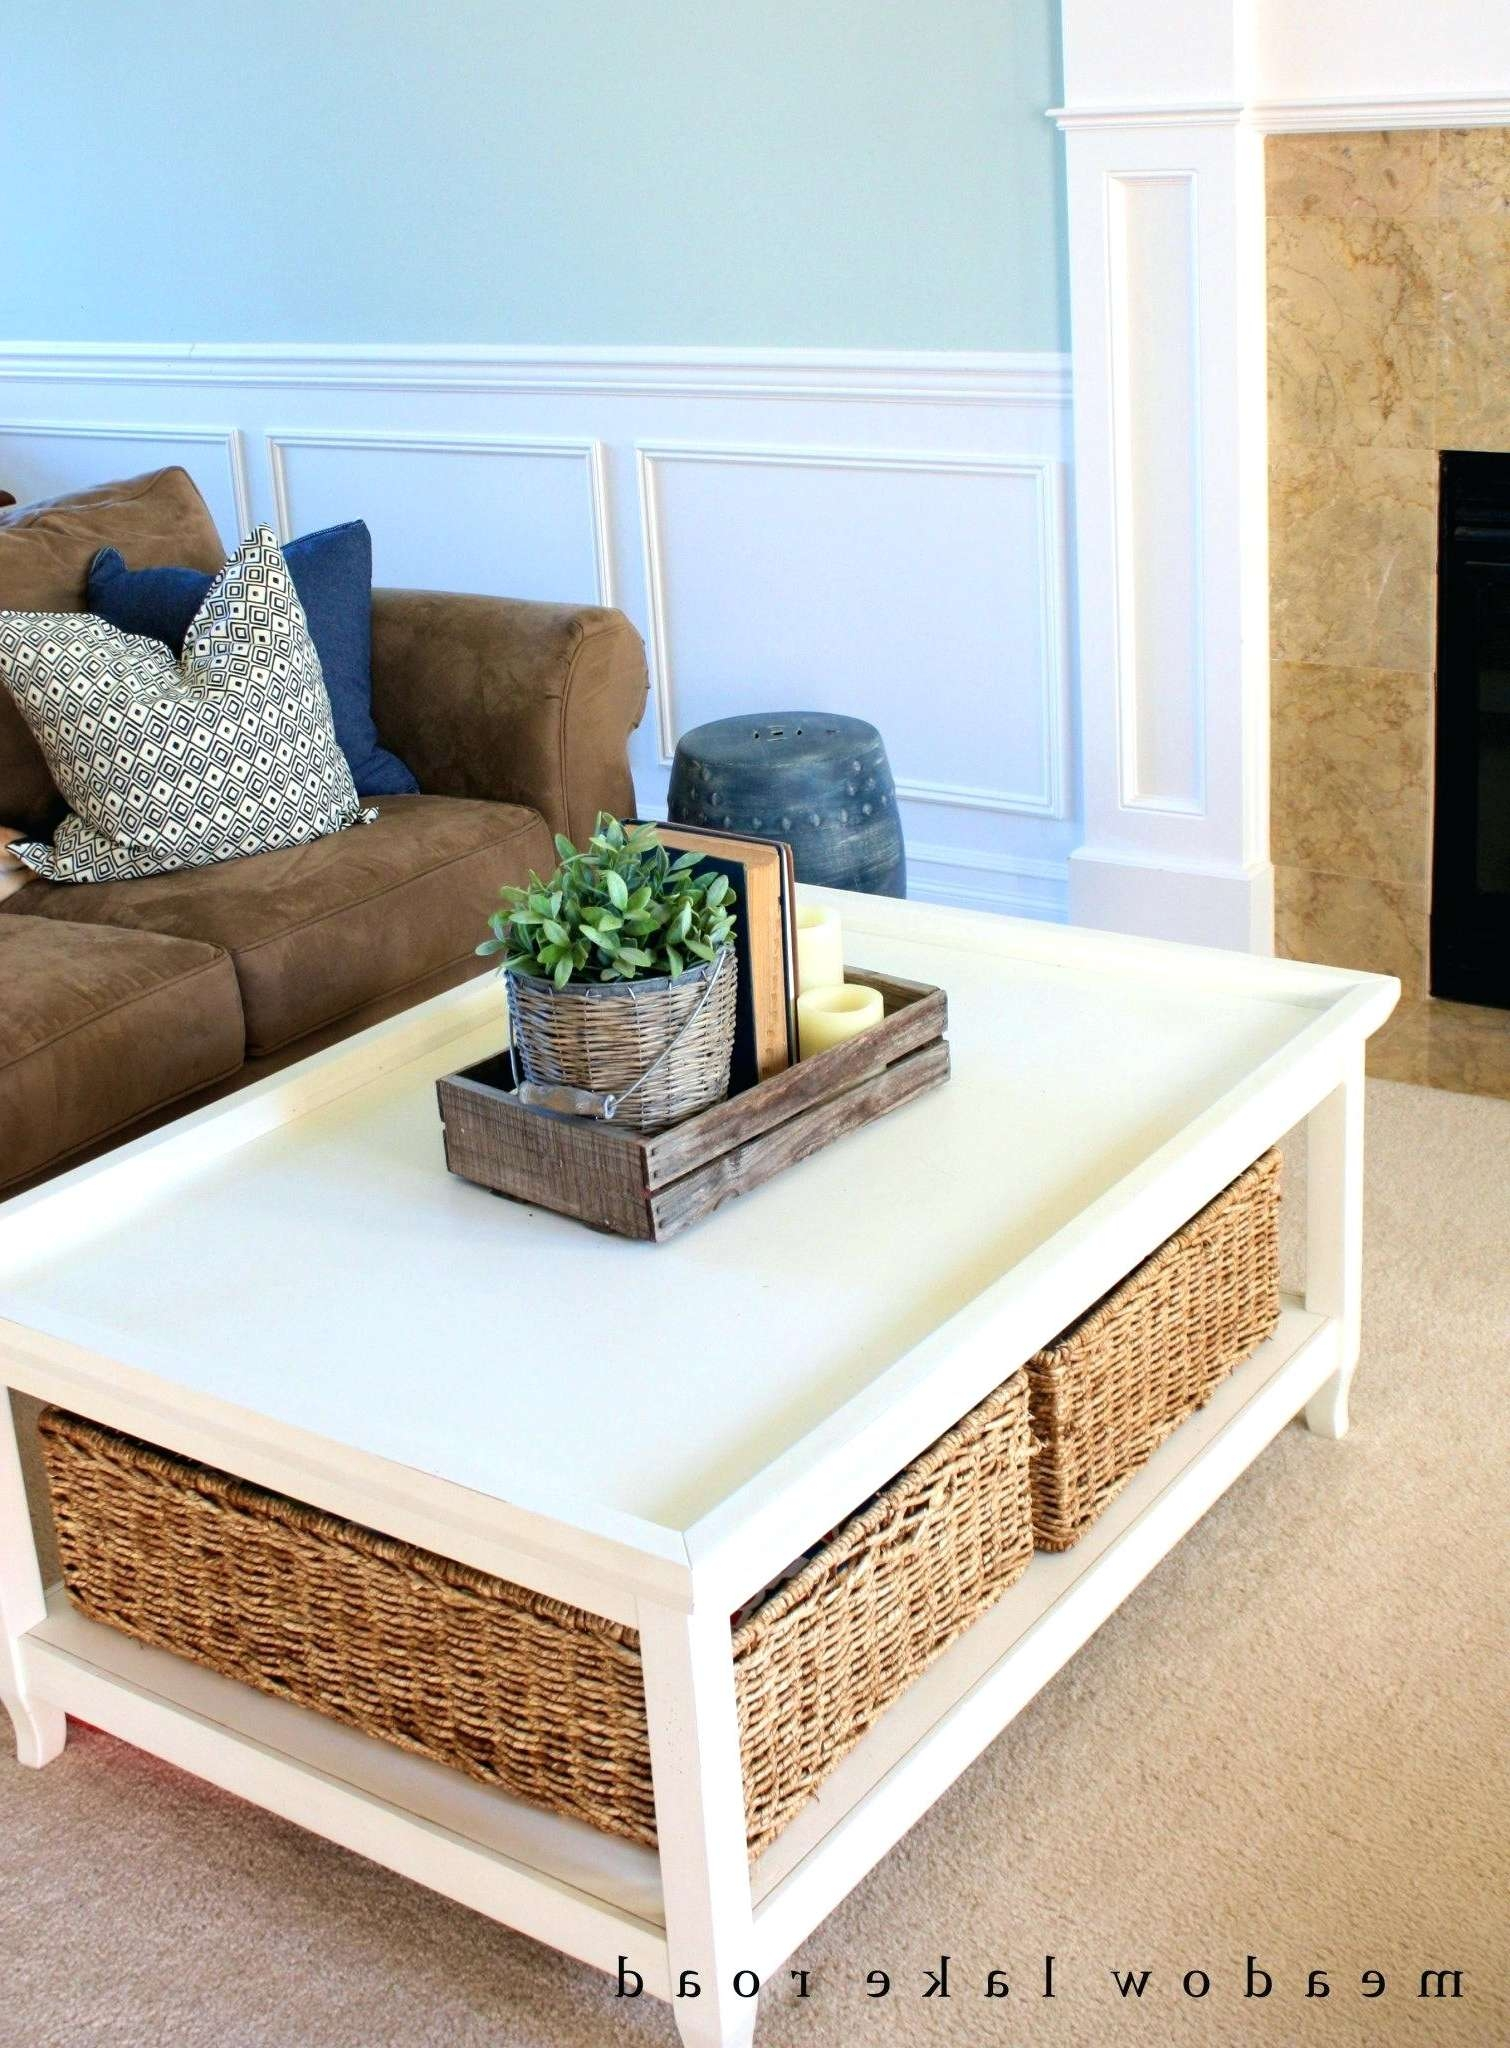 Square White Coffee Table Perfect For Interior Decor Storage Inside Newest Tables With Basket